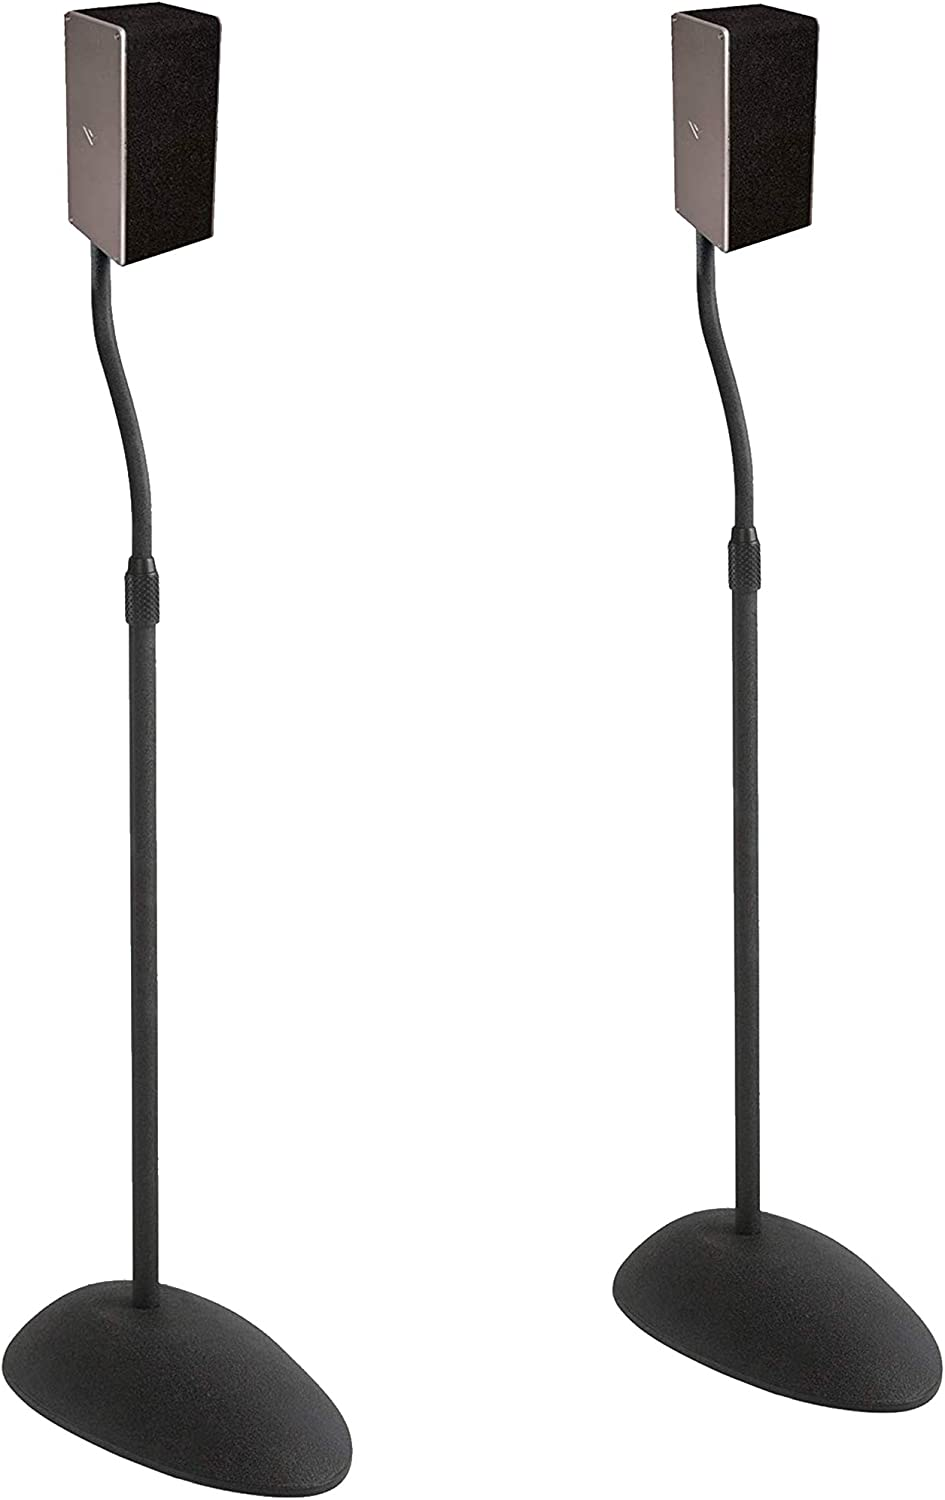 ECHOGEAR Adjustable Height Speaker Stands - Universal Compatibility with  Satellite Speakers from Vizio, Klipsch, Bose, Sony & More - Solid Steel